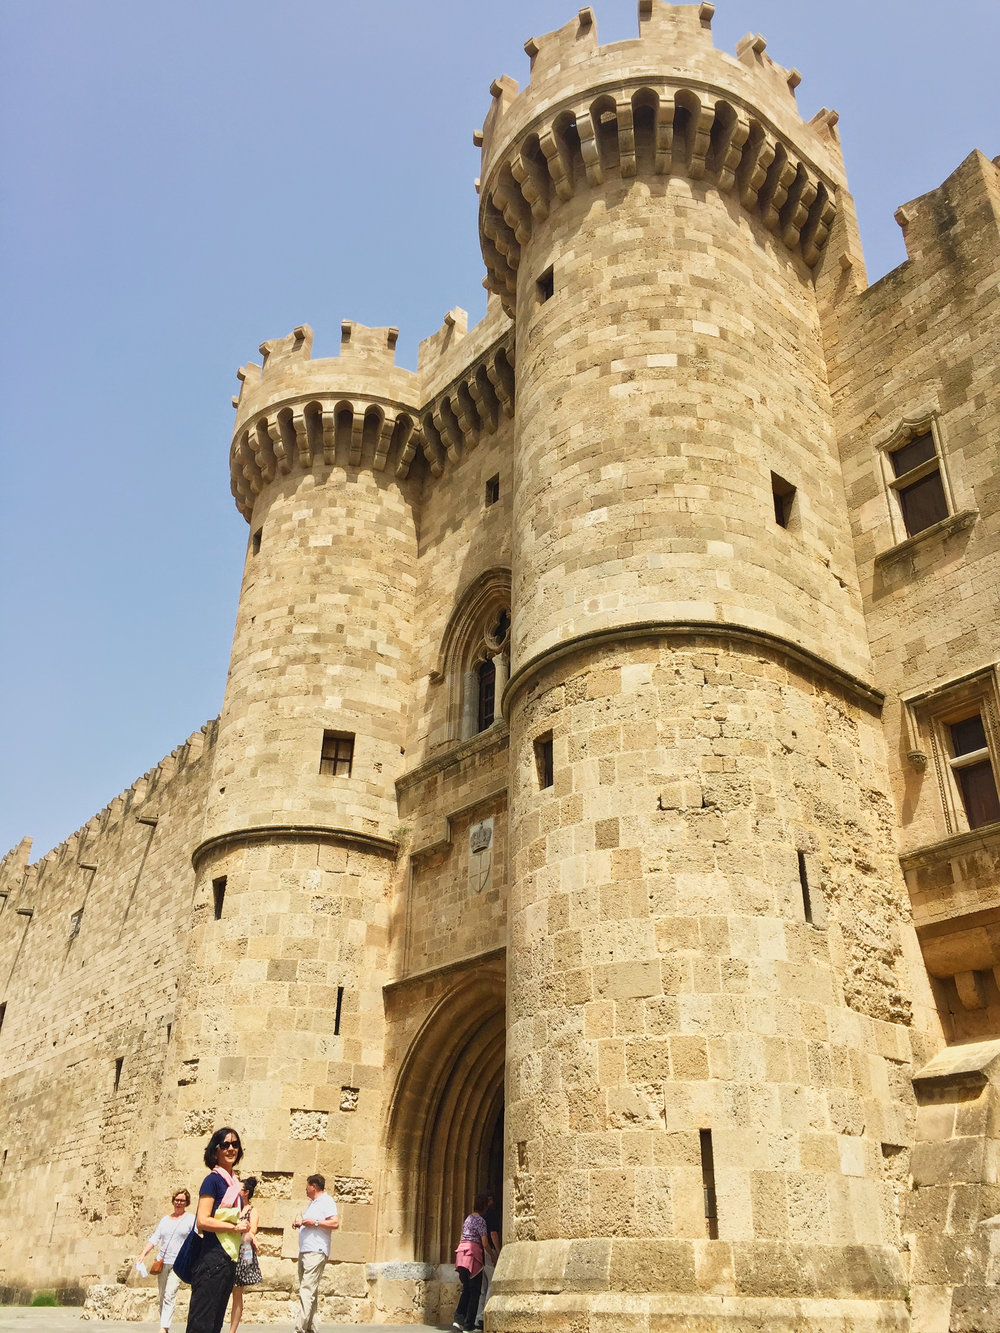 The entrance to the Palace of the Grandmaster of the Knights of Rhodes.